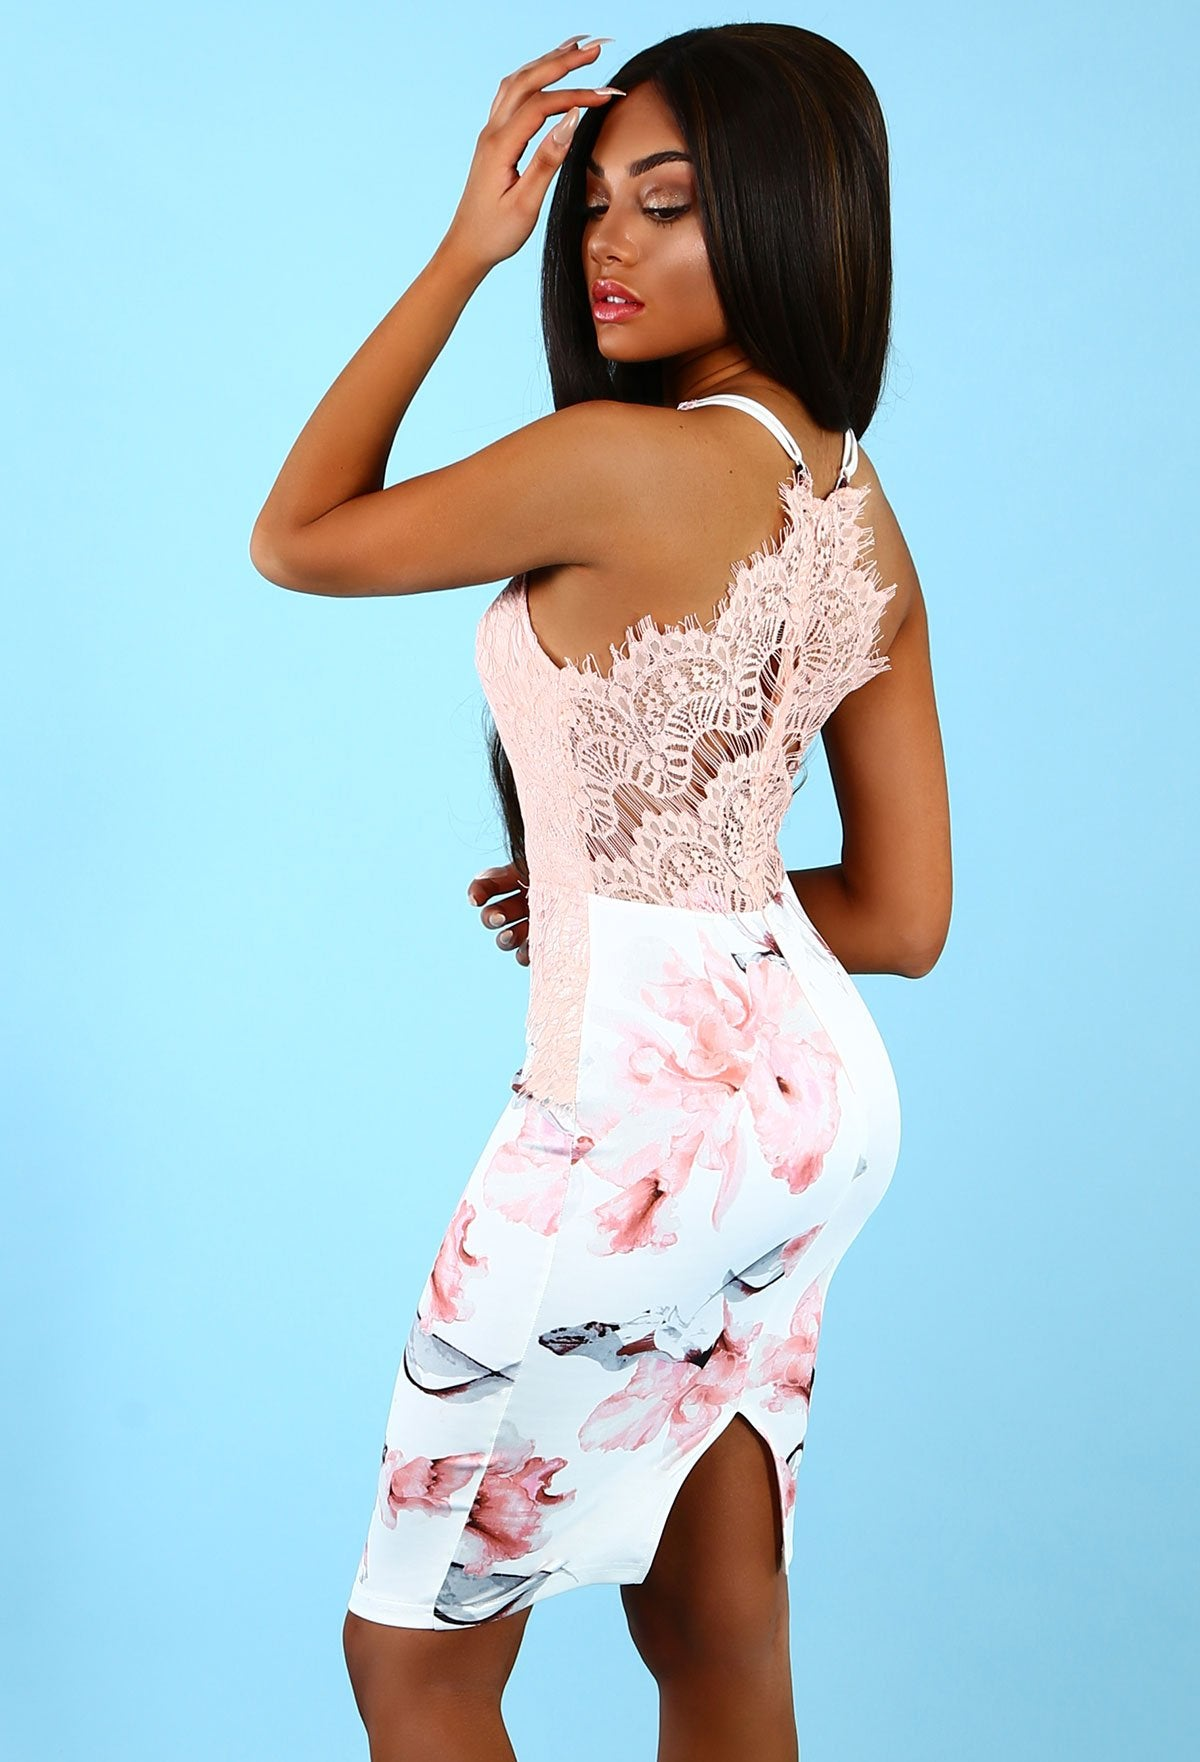 29f899bf7fcc Adorn You White and Nude Floral Lace Midi Dress – Pink Boutique UK